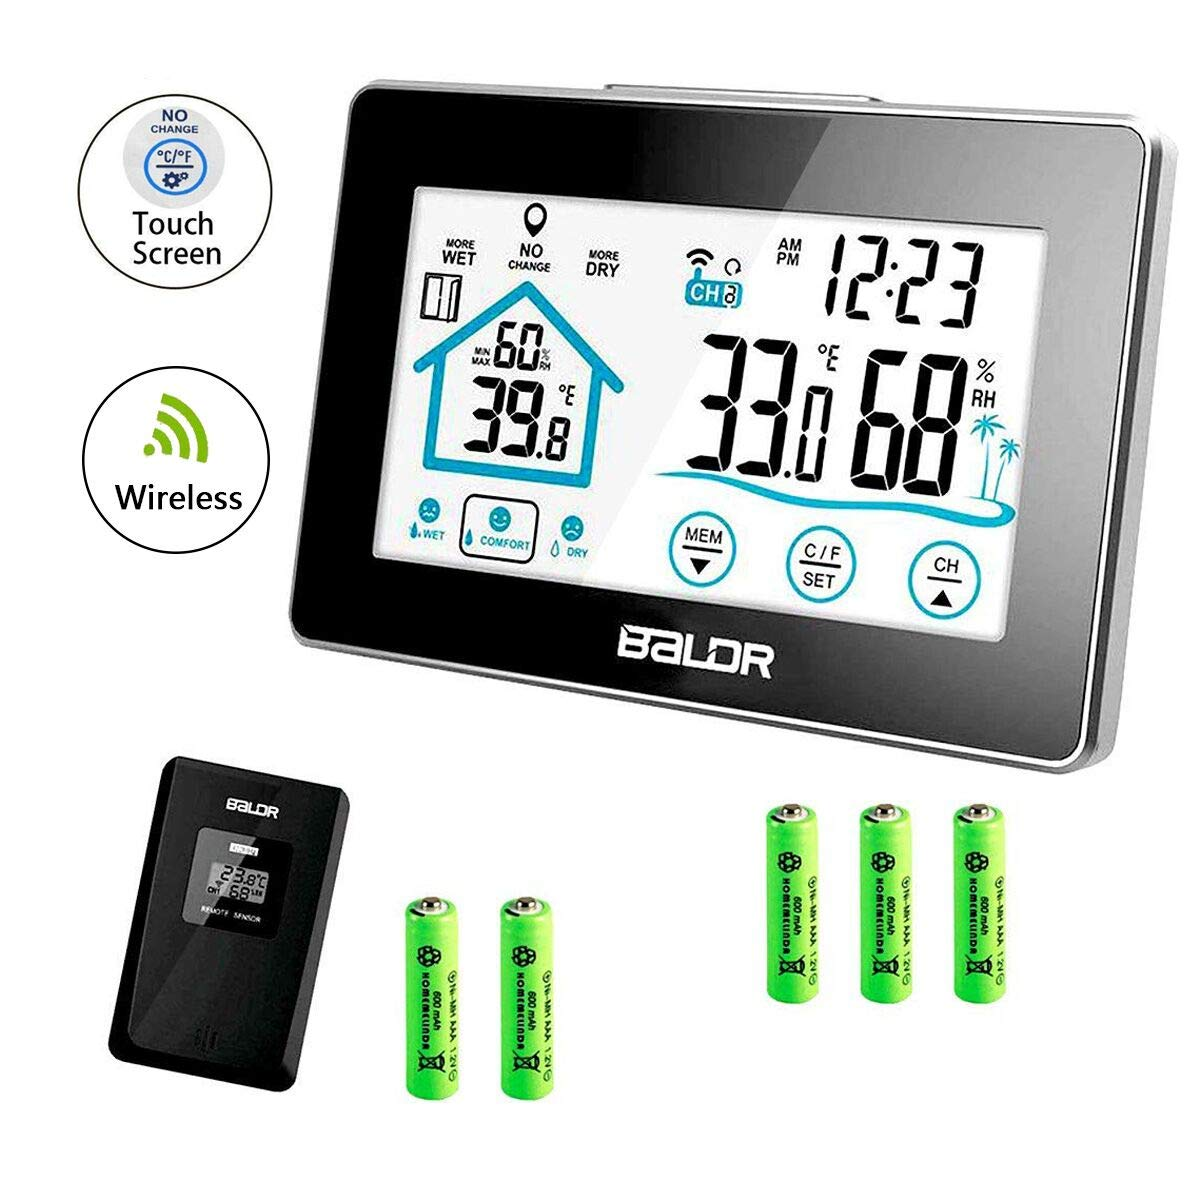 Digital Hygrometer Thermometer Humidity Meter, Wireless Weather Station Window Forecast Outdoor Indoor Temperature Gauge Relative Remote Sensor, Touch Screen Batteries (Included) Operated Temp Monitor